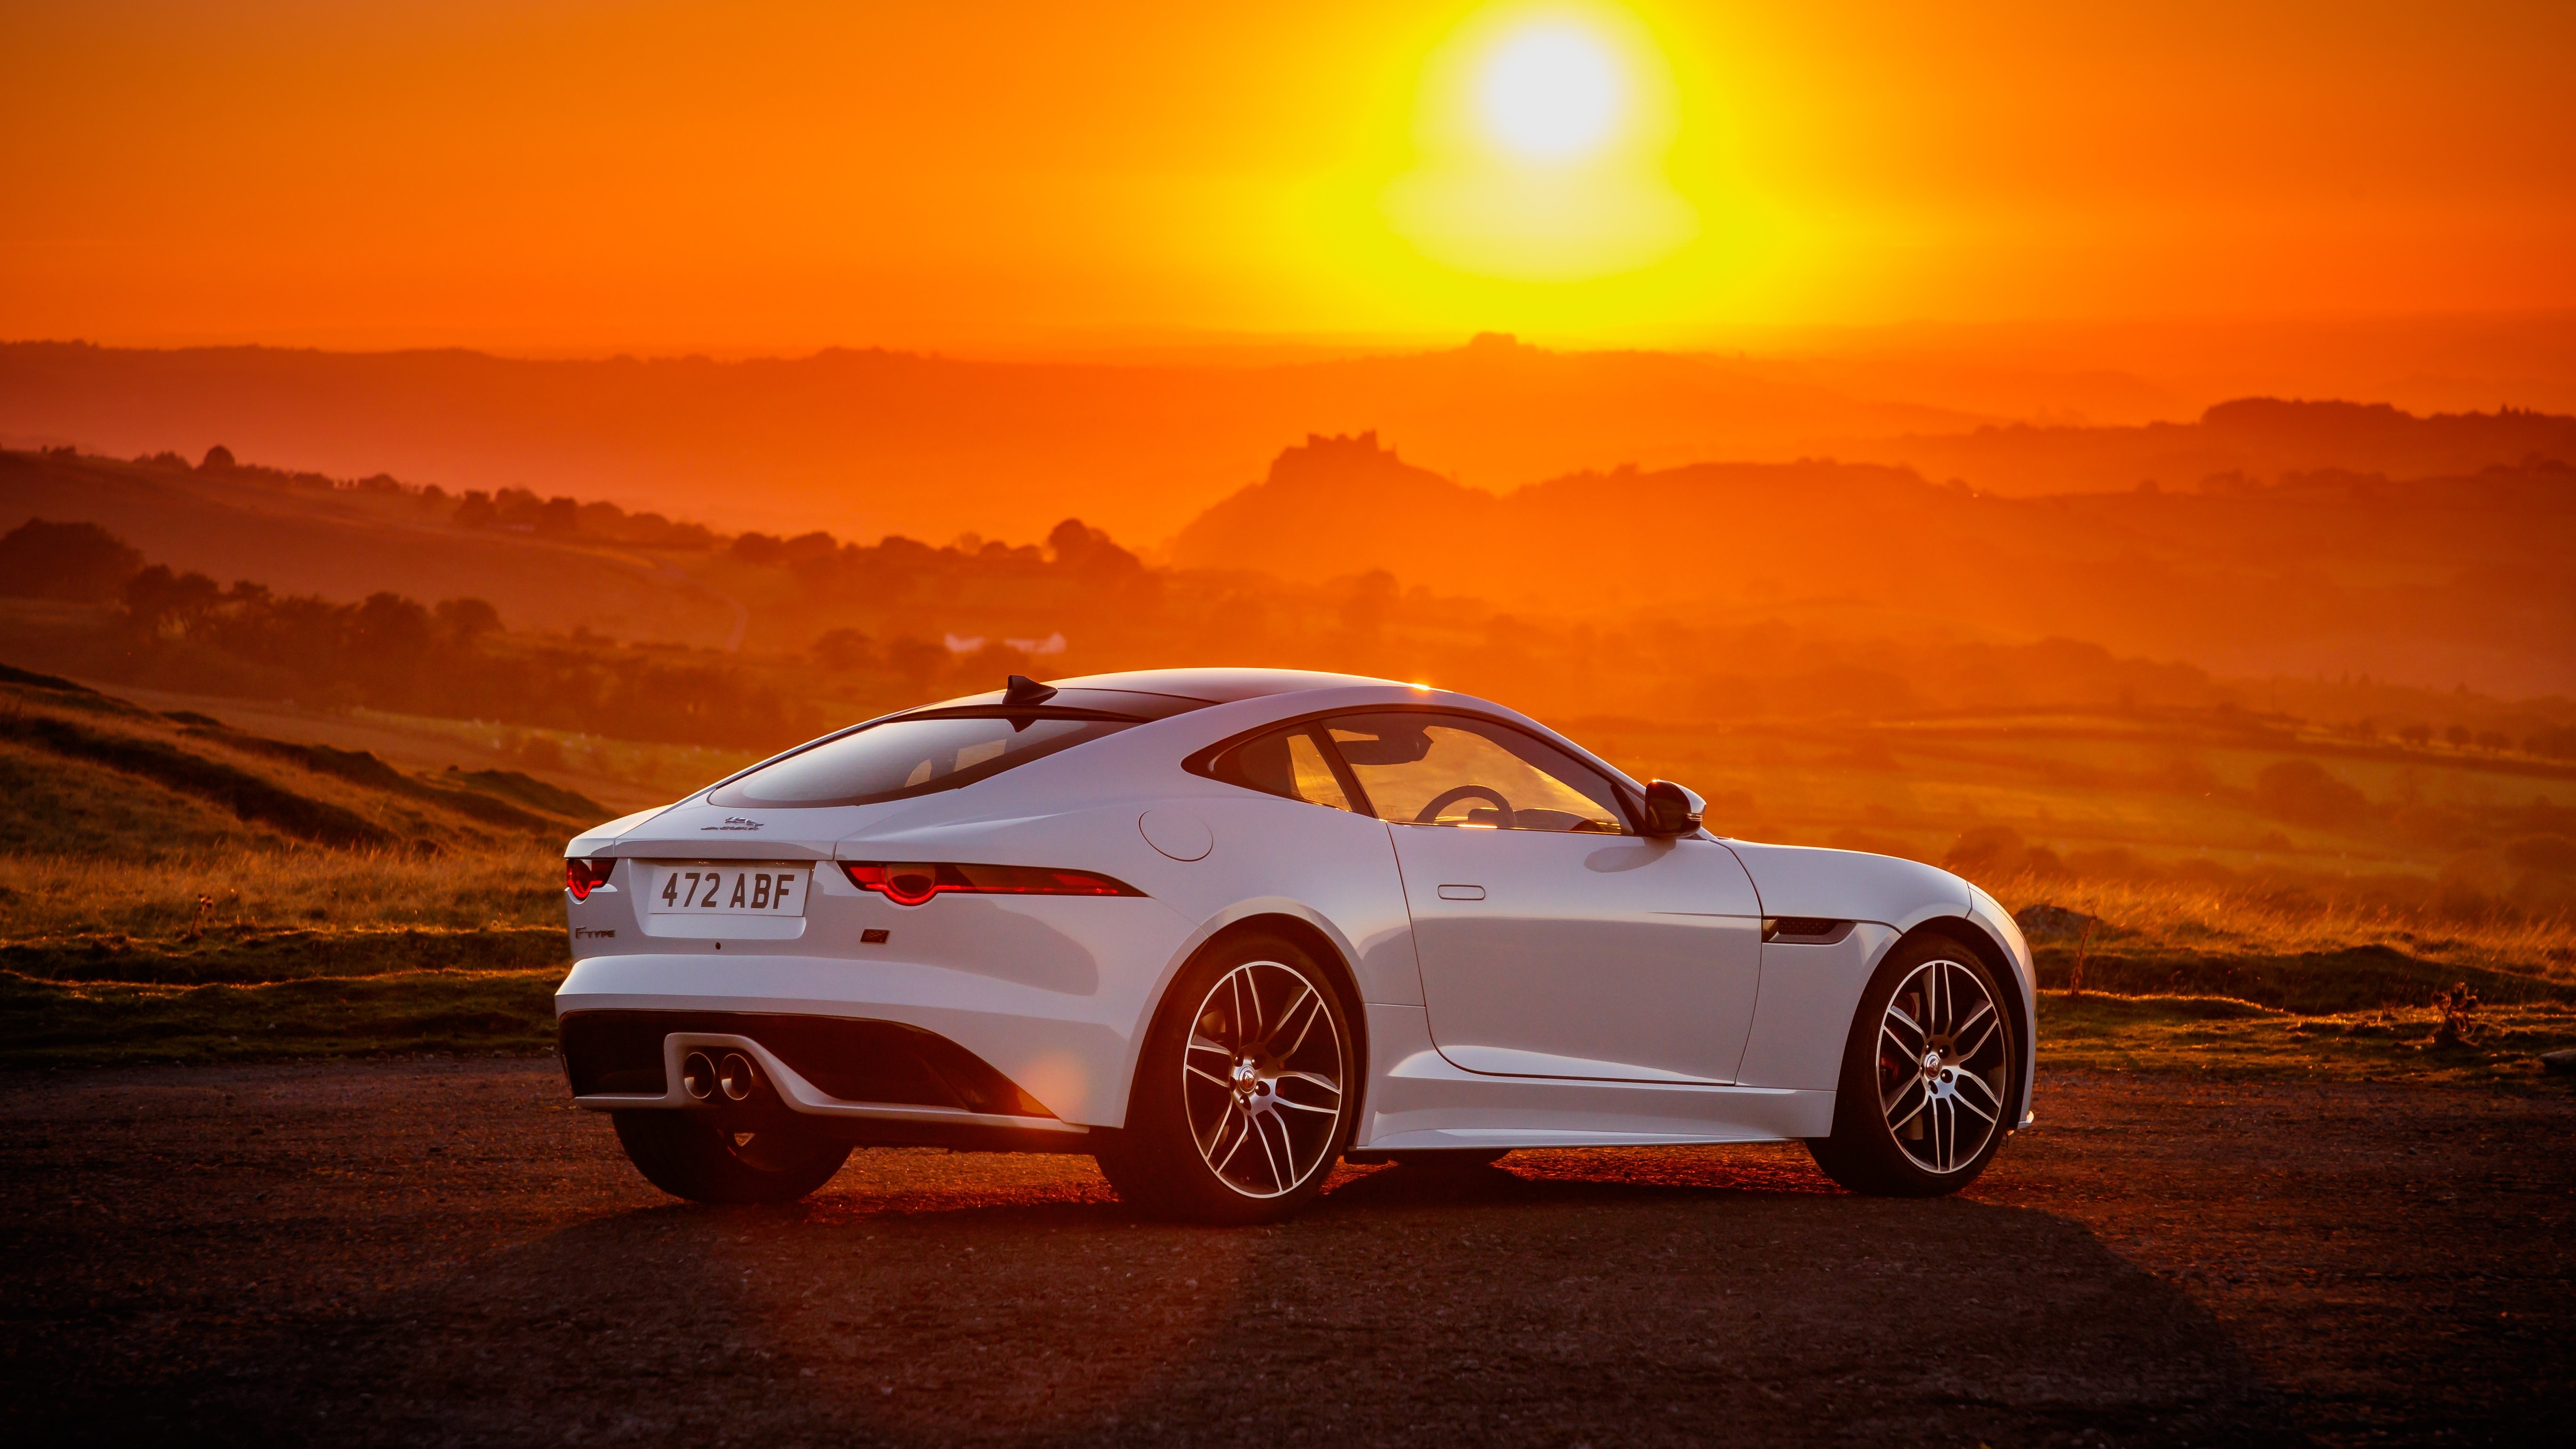 f2595beb89 There s no denying that the Jaguar F-Type is one hell of a sports coupe